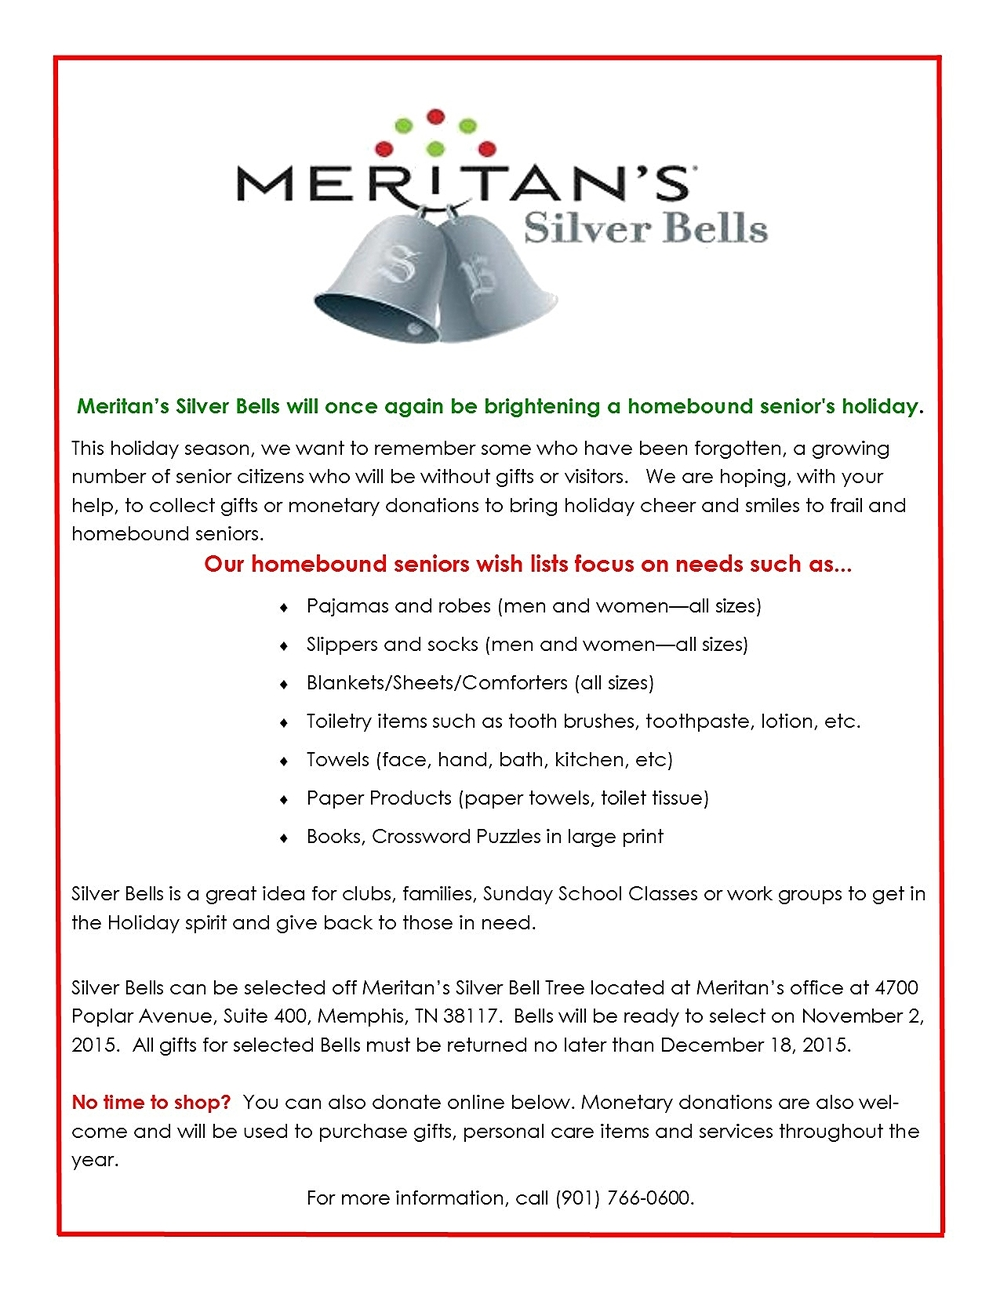 silver bells annual holiday gifts for homebound seniors meritan